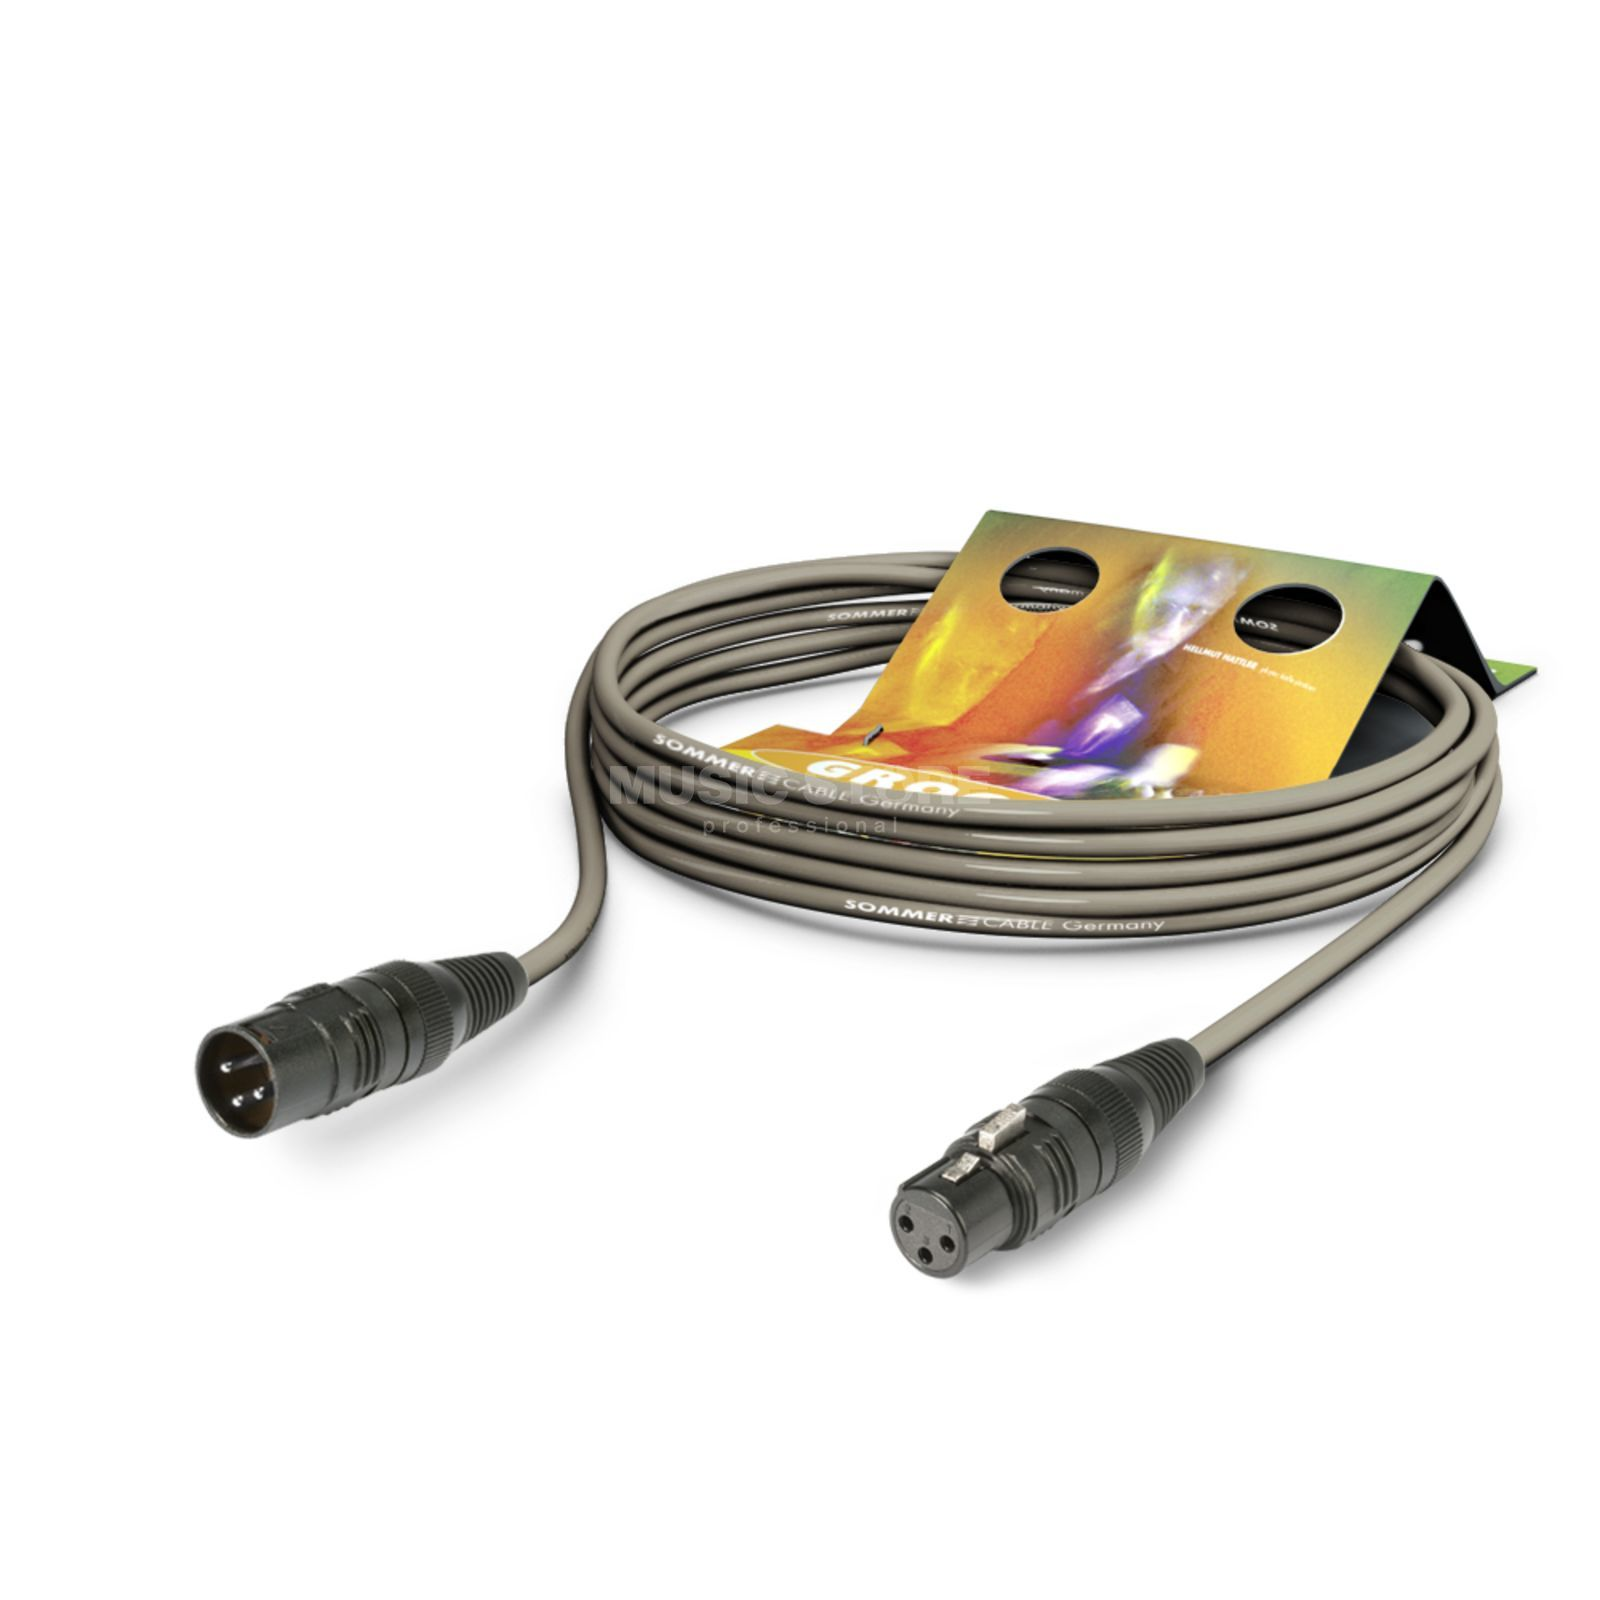 Sommer Cable Mikrofonkabel SC-STAGE 3m grau HICON, SGCE-0300 GR Produktbild